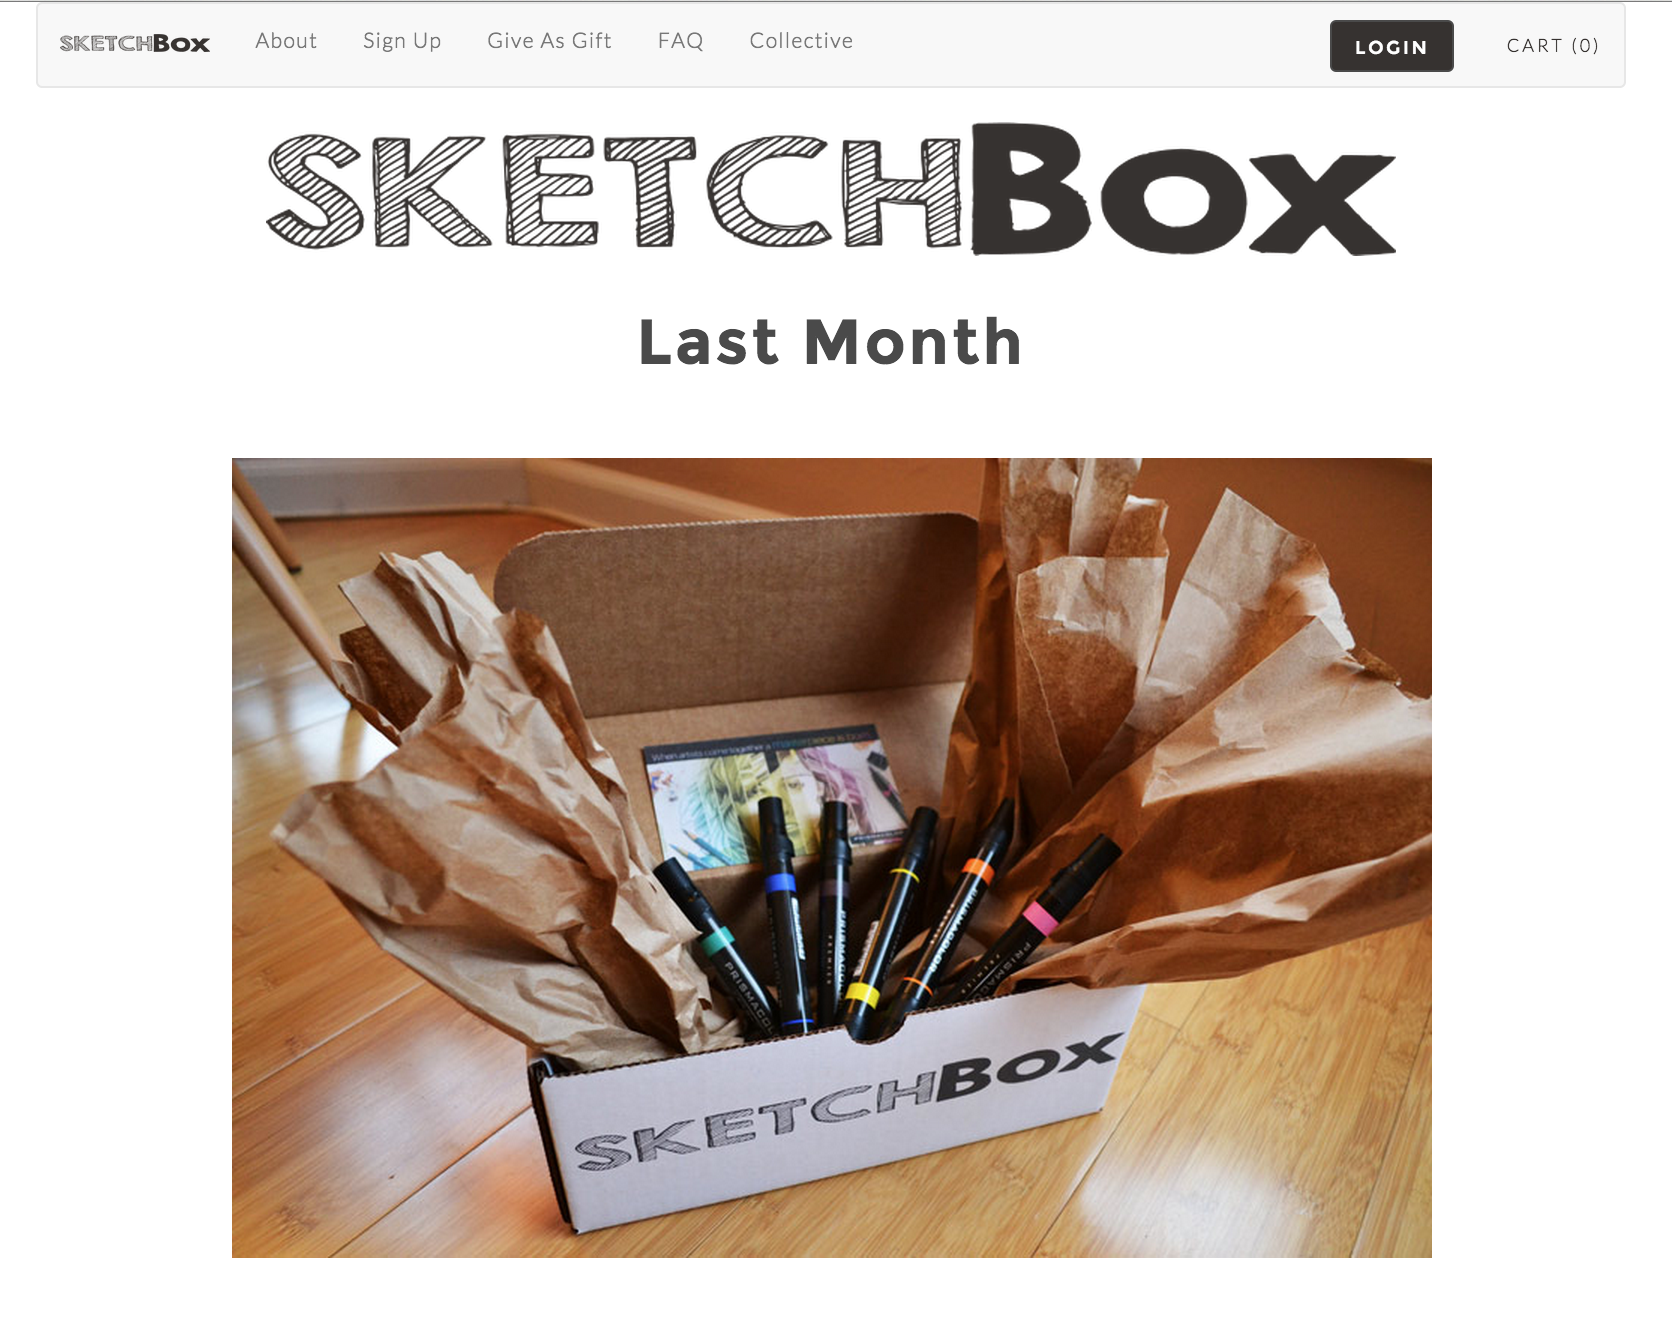 Lightning Pitch Sketchbox Monthly Subscription Box For